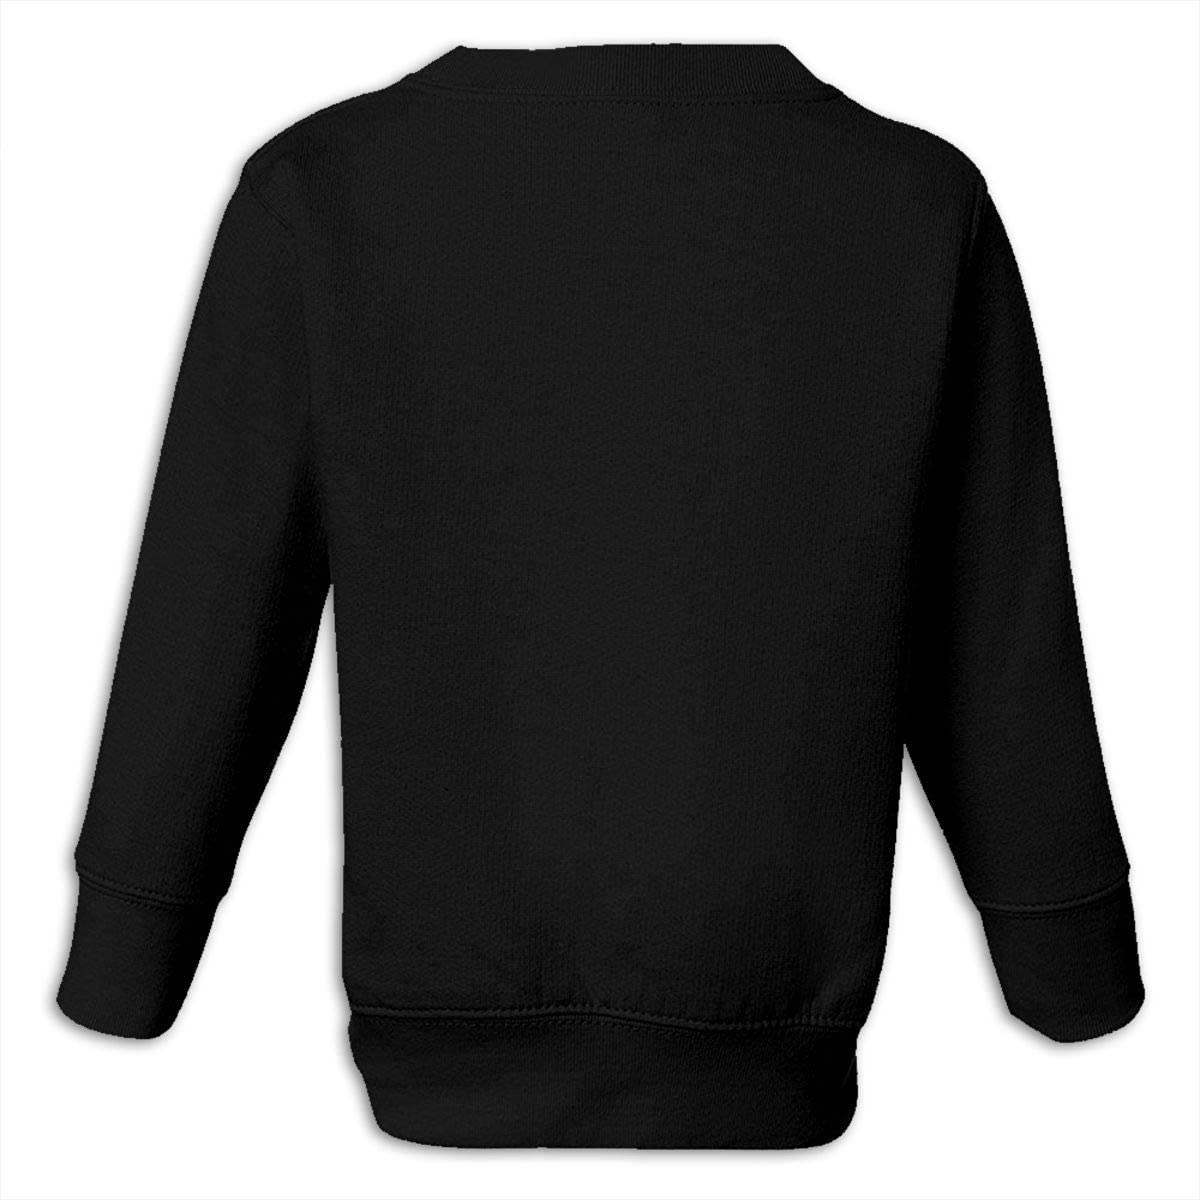 Samurai Boys Girls Pullover Sweaters Crewneck Sweatshirts Clothes for 2-6 Years Old Children